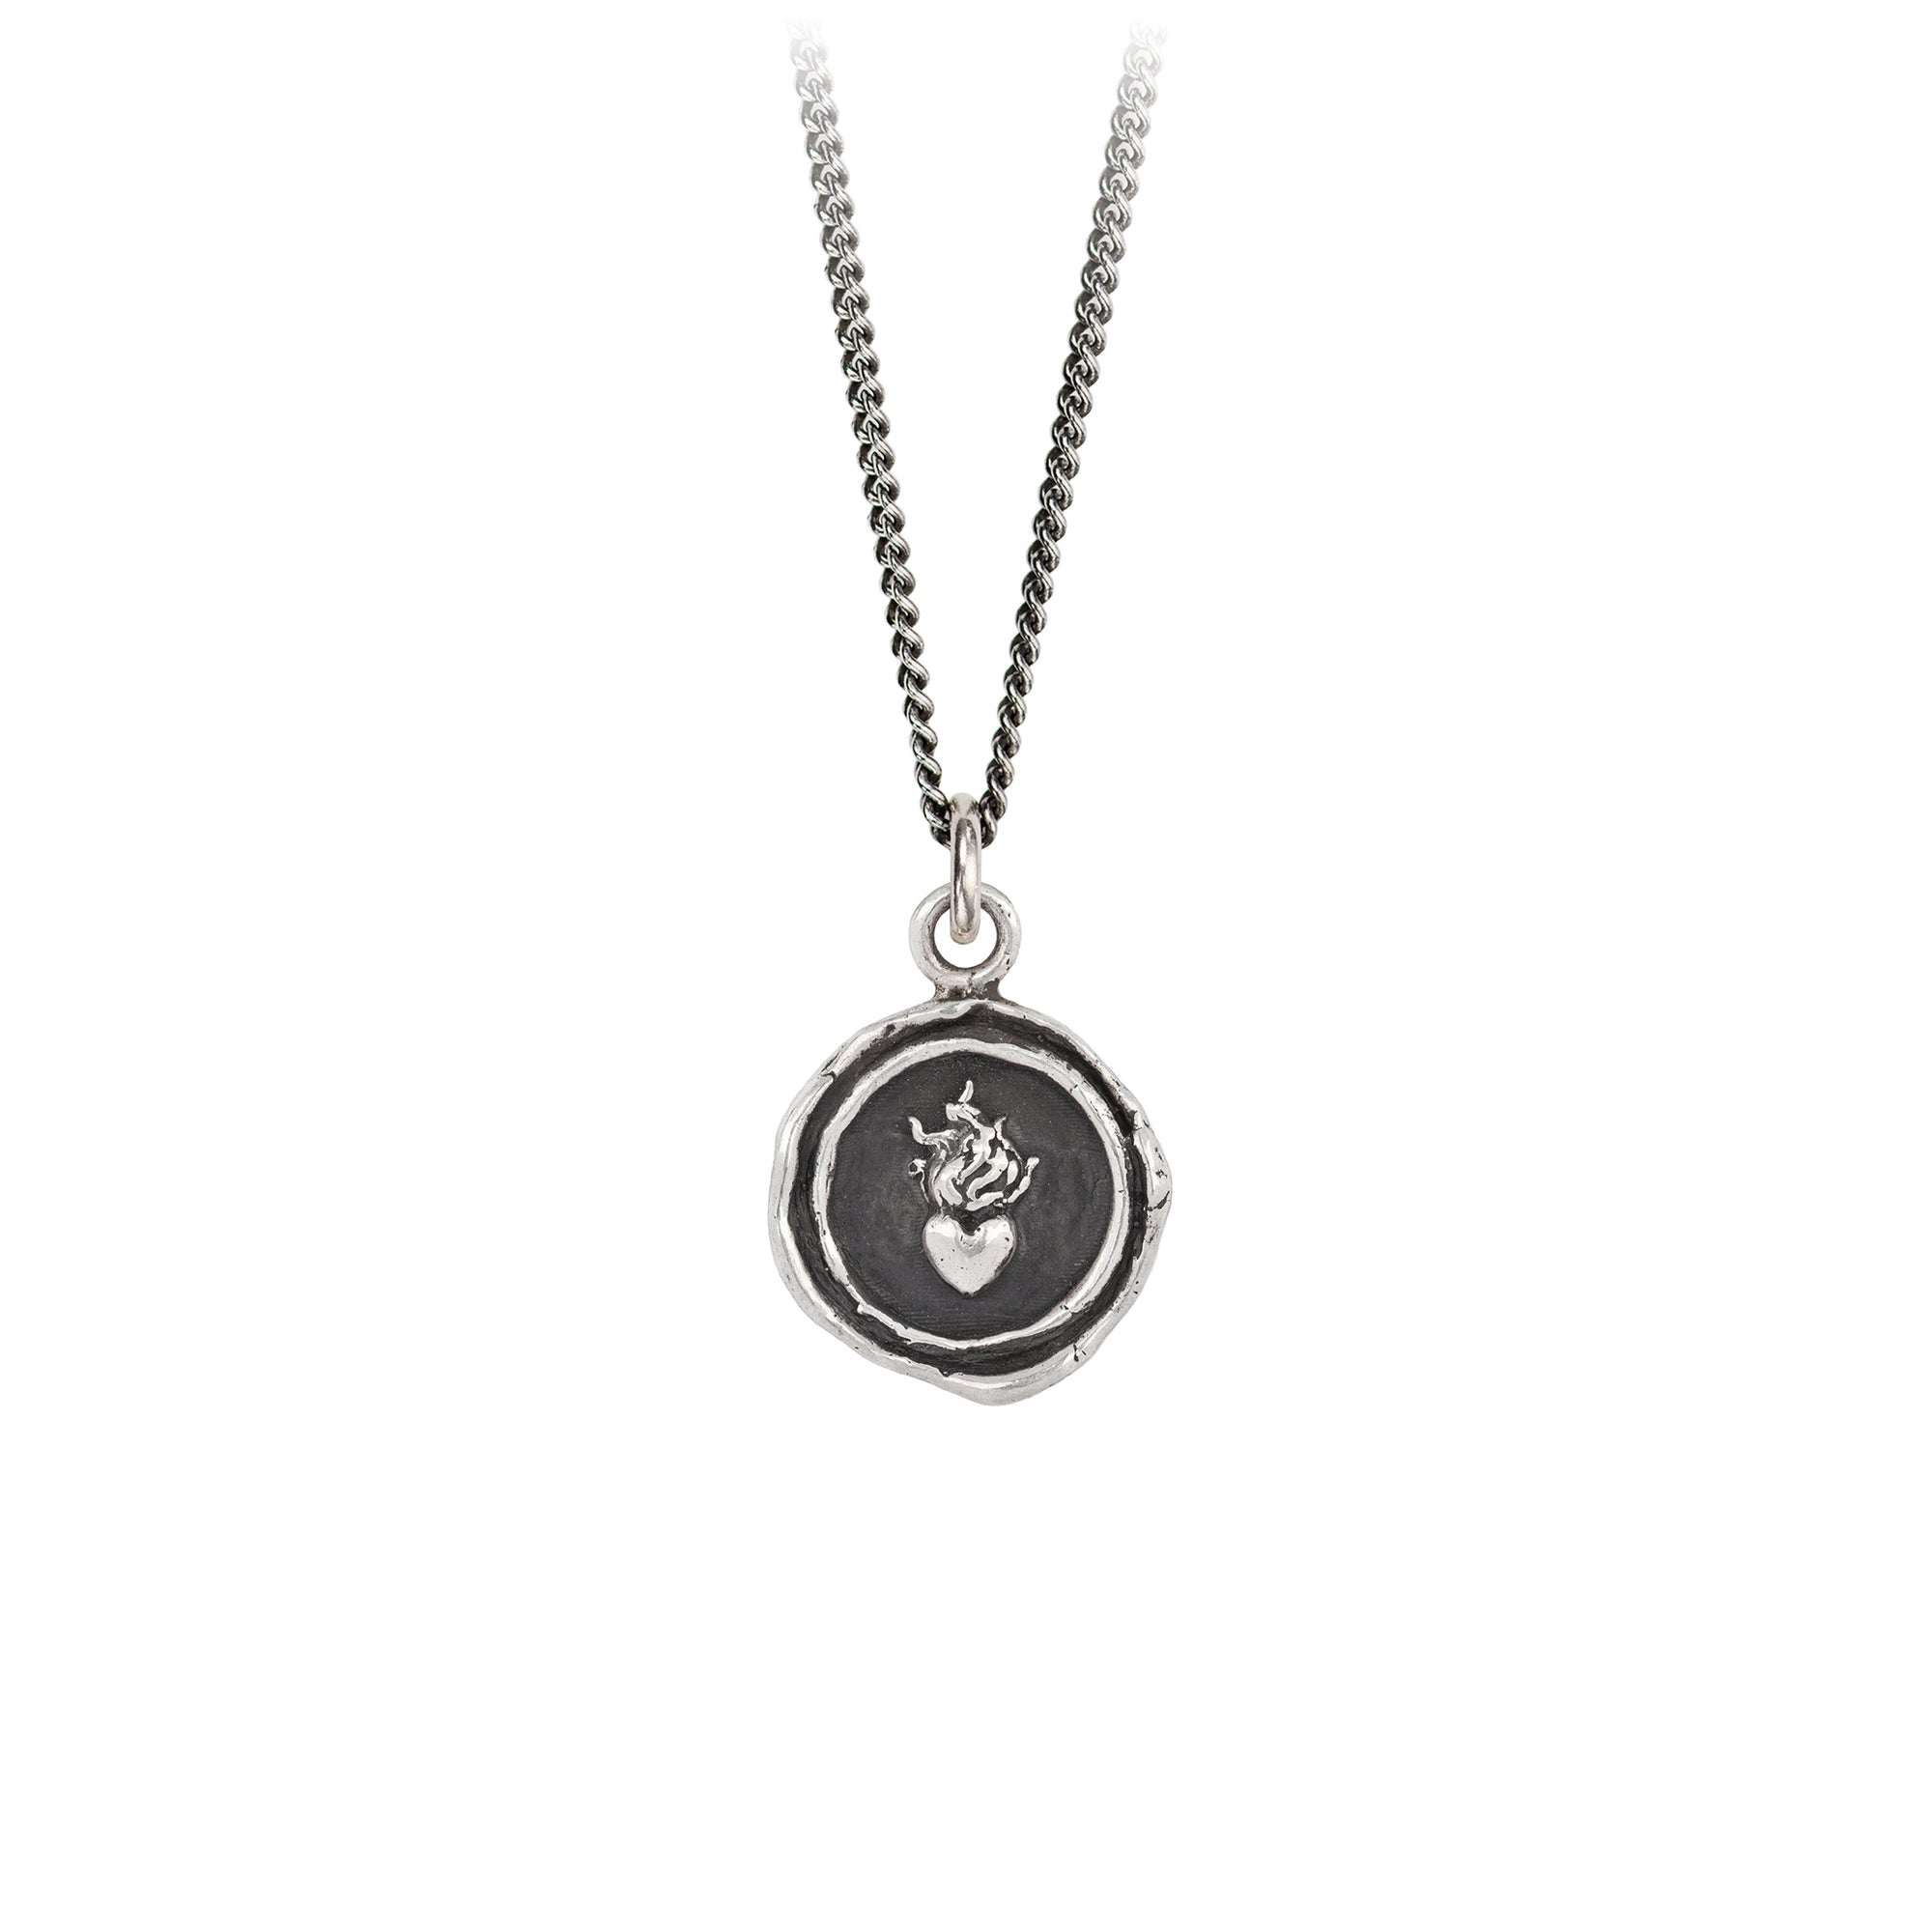 Pyrrha Flaming Heart Signature Talisman Necklace Silver